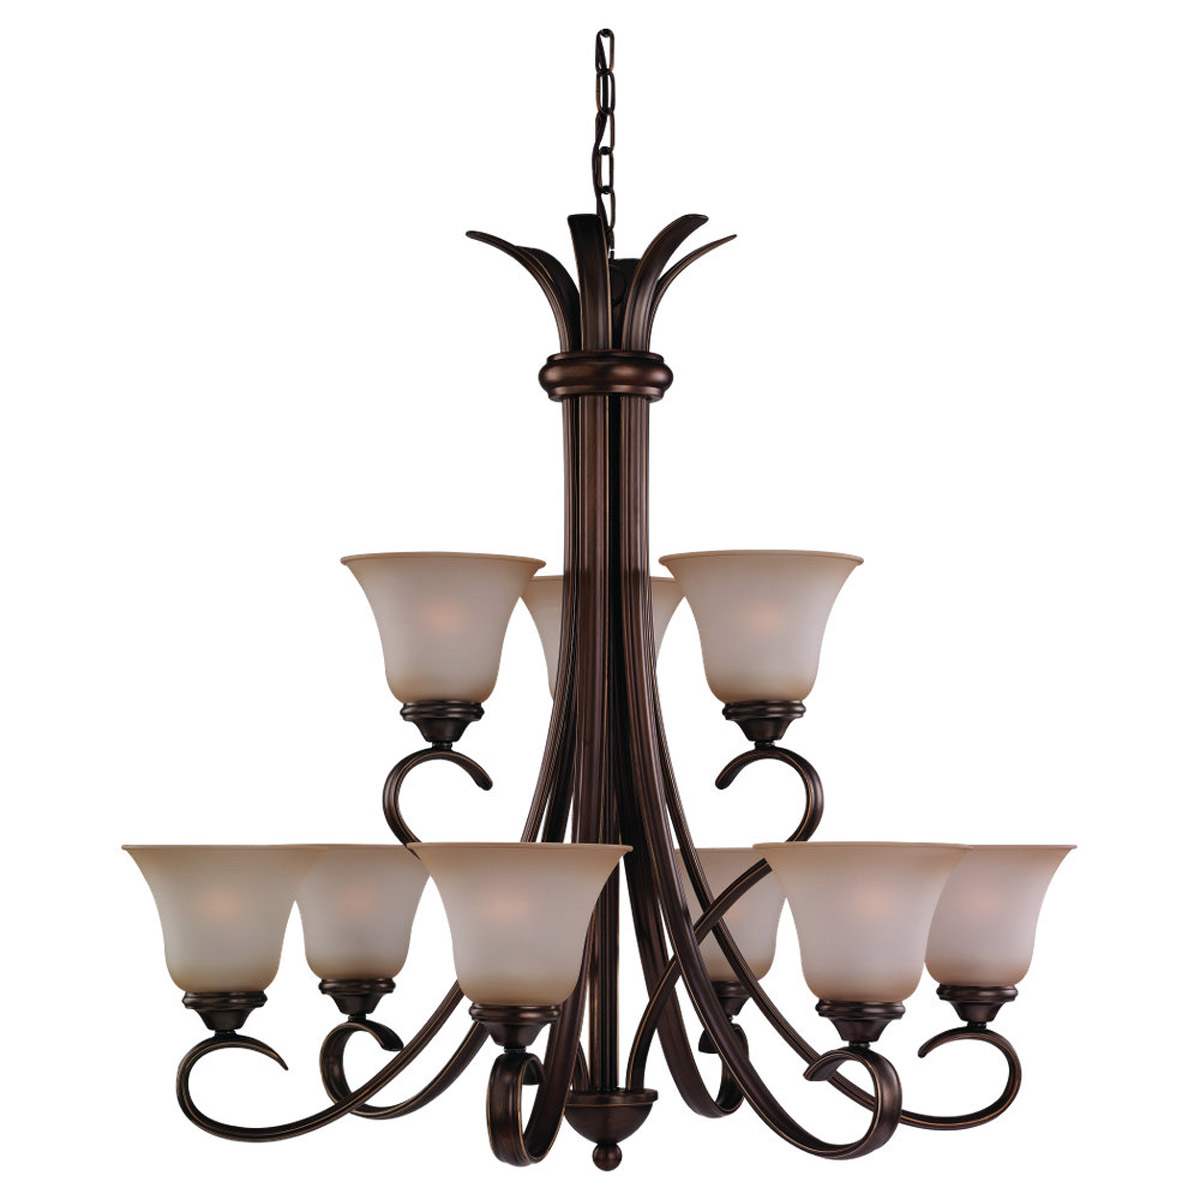 Sea Gull Lighting Rialto 9 Light Chandelier in Russet Bronze 31362-829